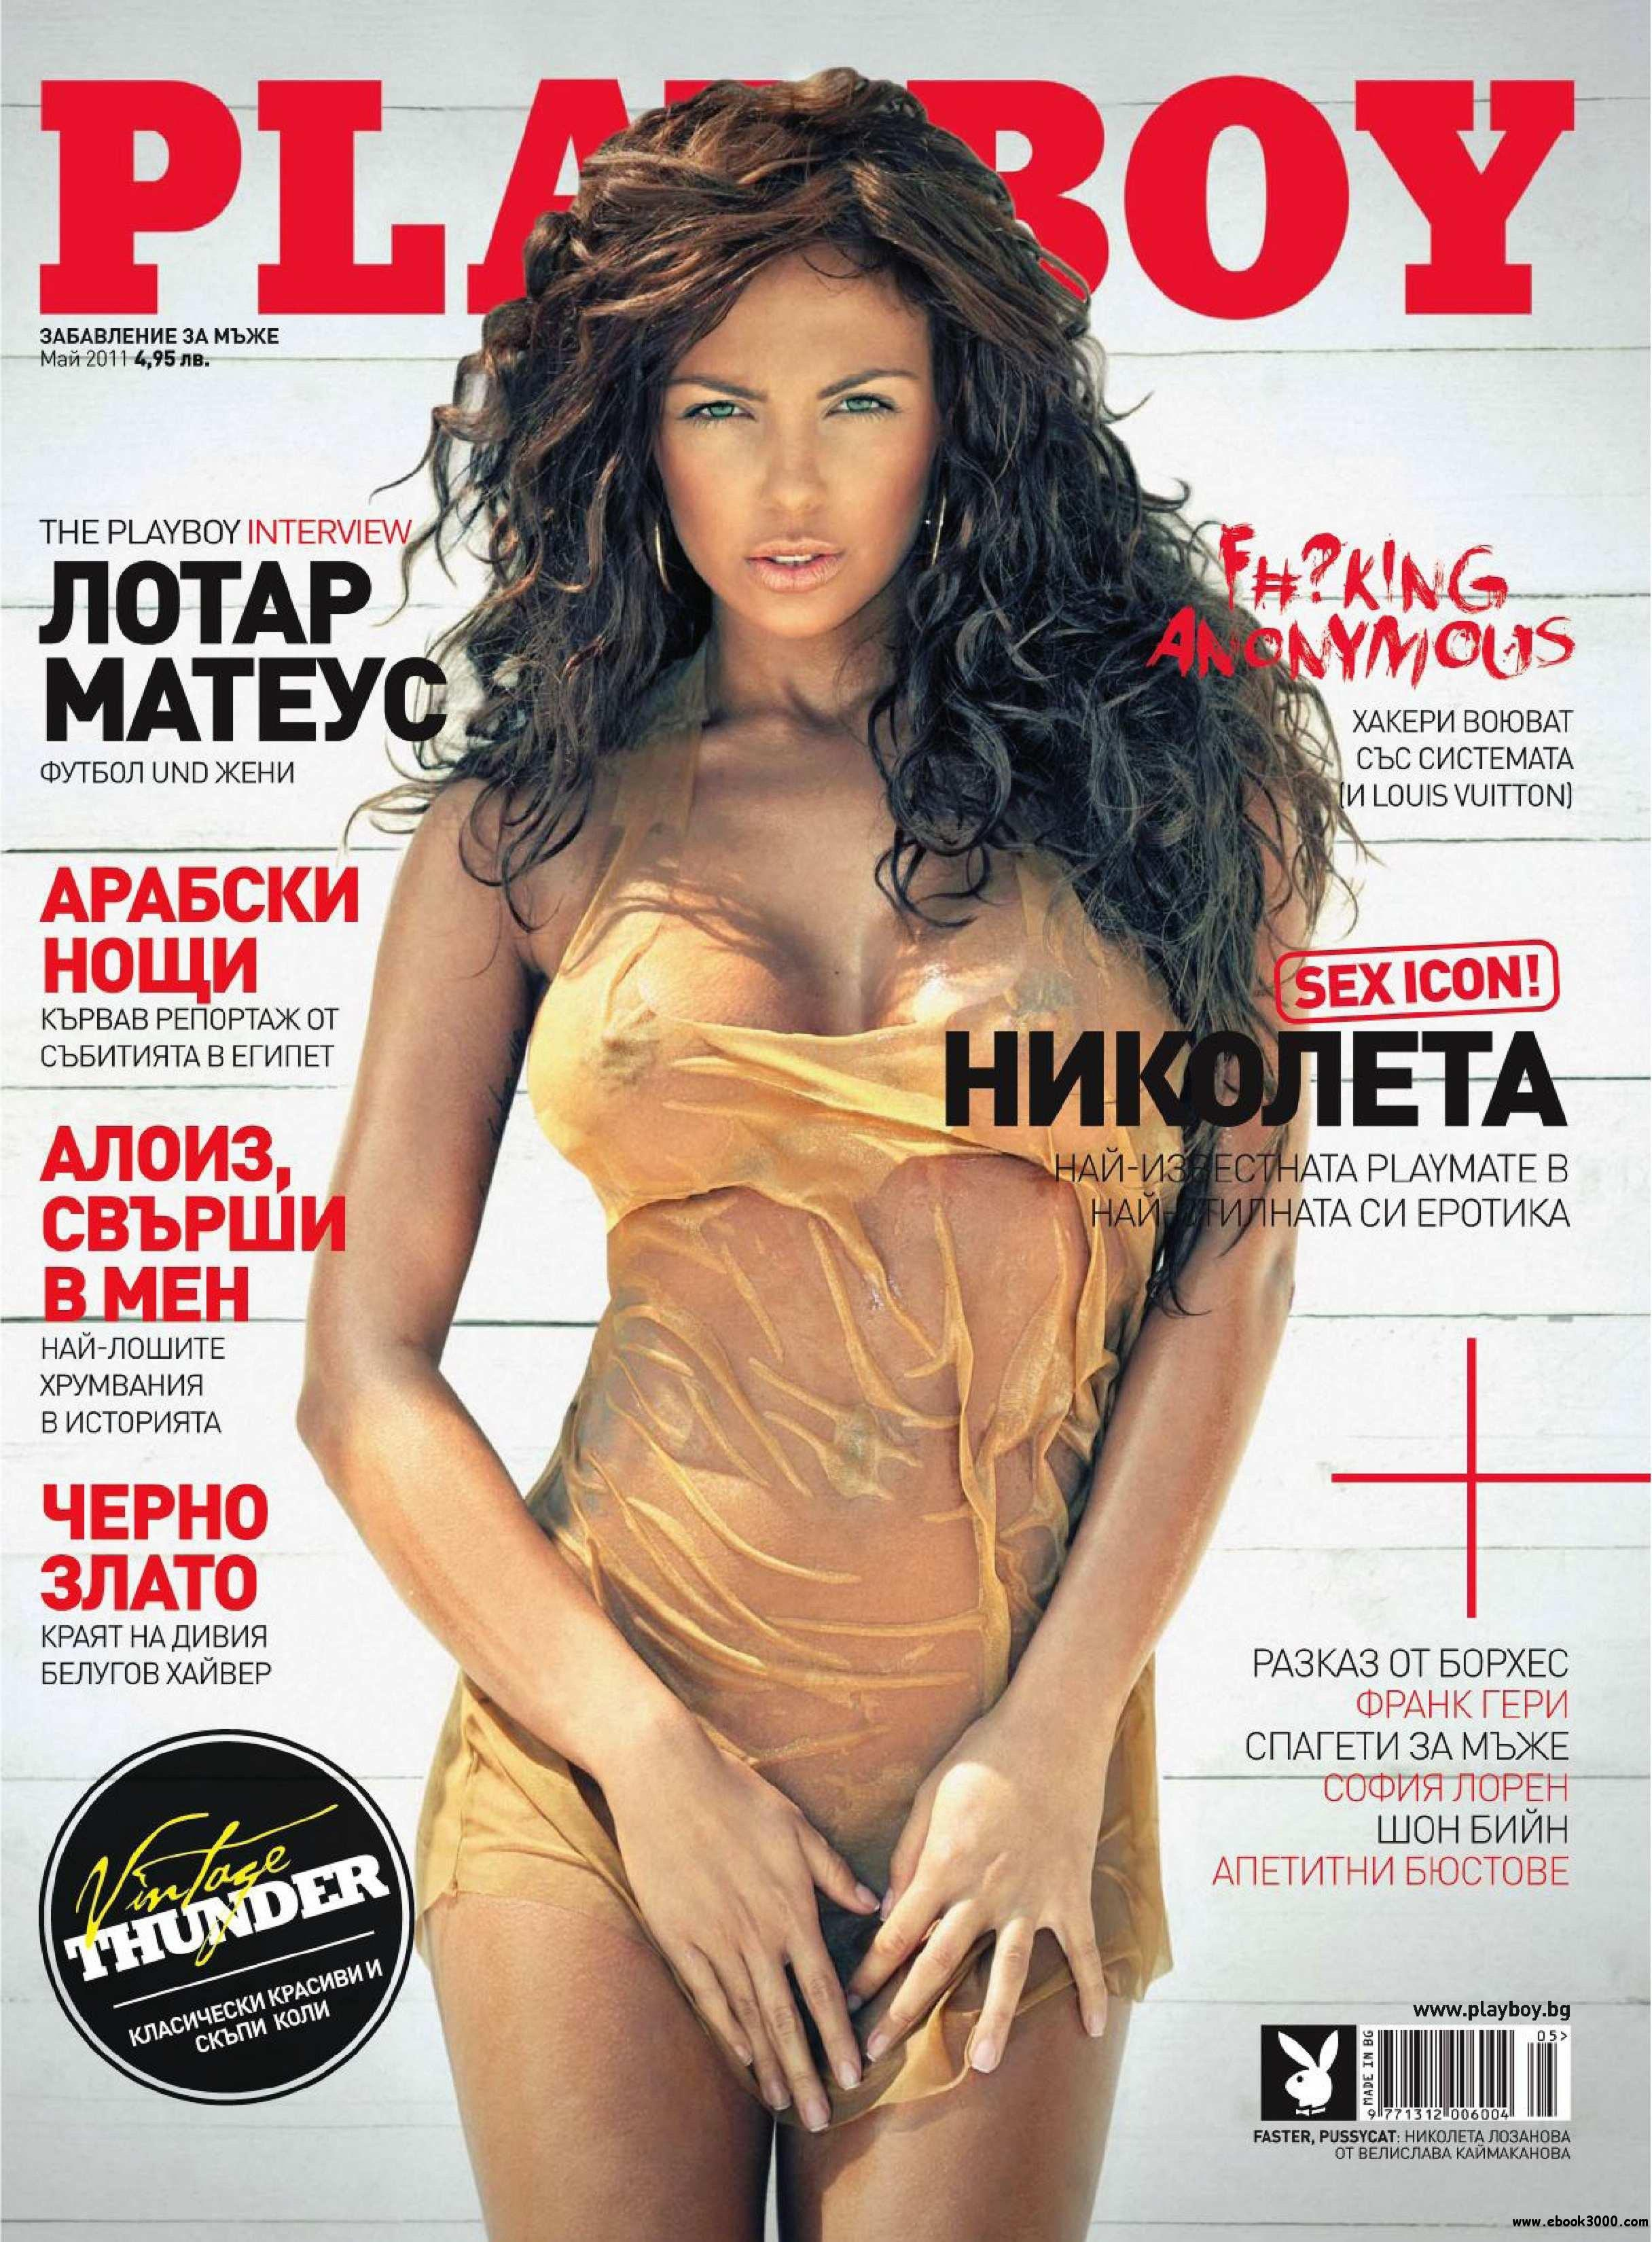 Playboy Bulgaria - May 2011 - No watermark free download